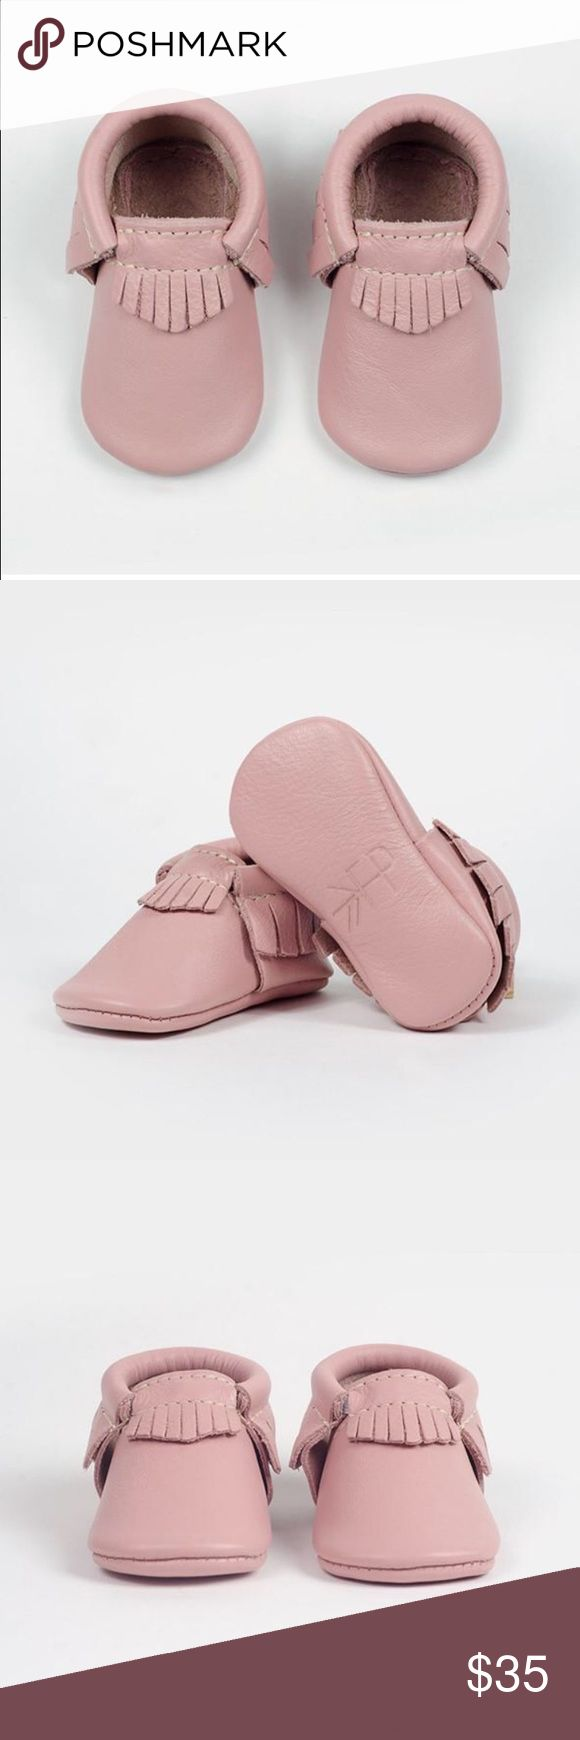 Freshly Picked Leather Mocassins in Blush Sz 2 Freshly Picked Leather Mocassins in Blush Color!! Excellent condition-- only put them on baby once! Size 2-- comes with dust bag and could be gifted as brand new!! Freshly Picked Shoes Baby & Walker